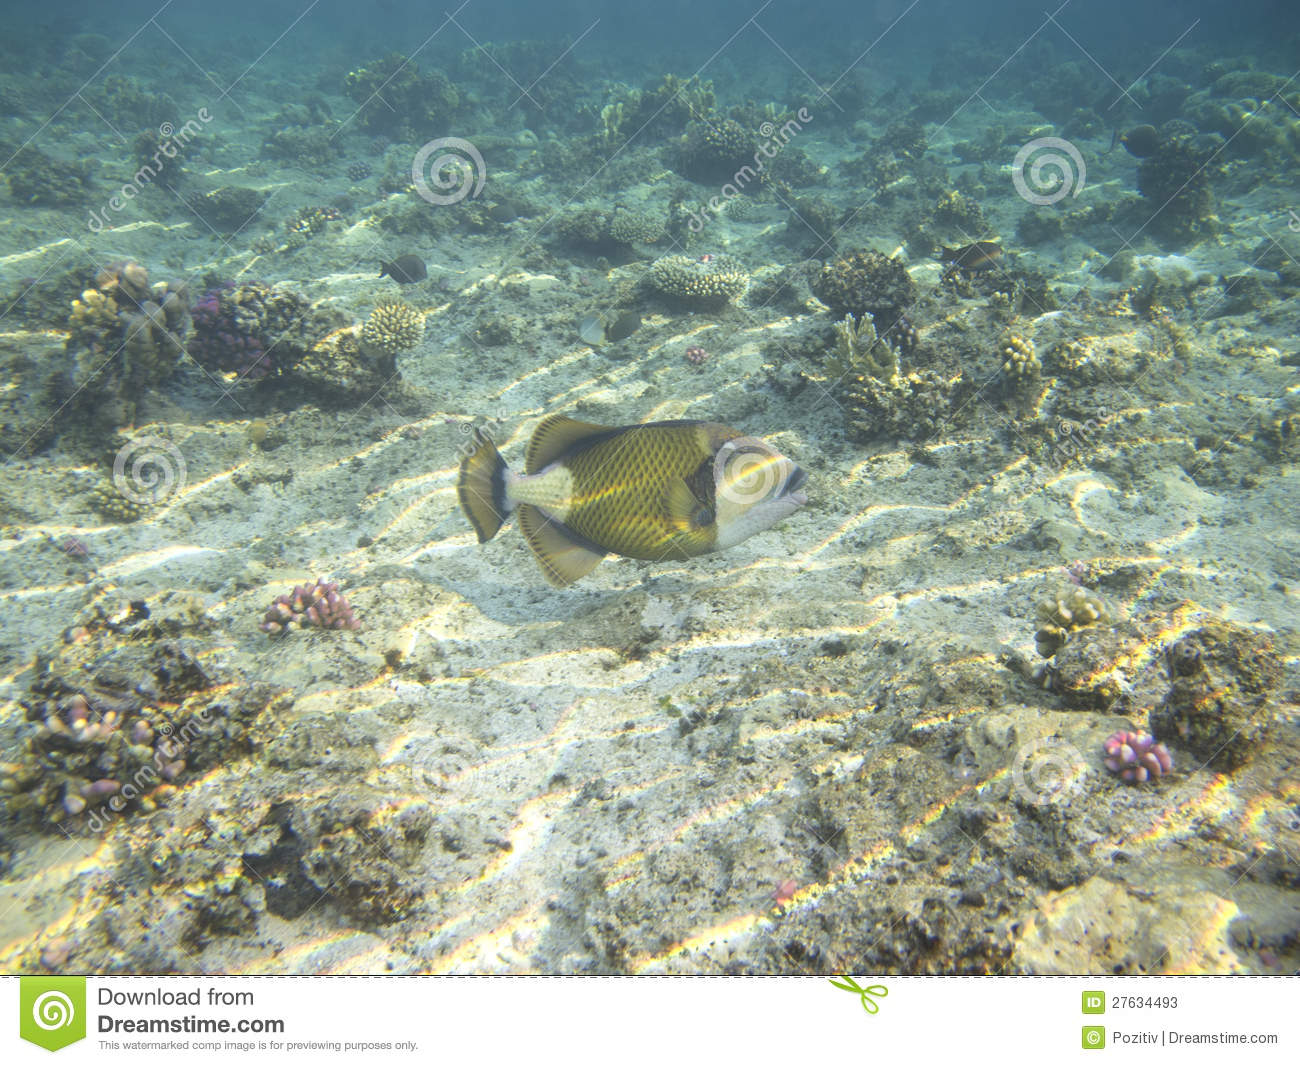 Sea bass stock photos image 27634493 for Red sea fish